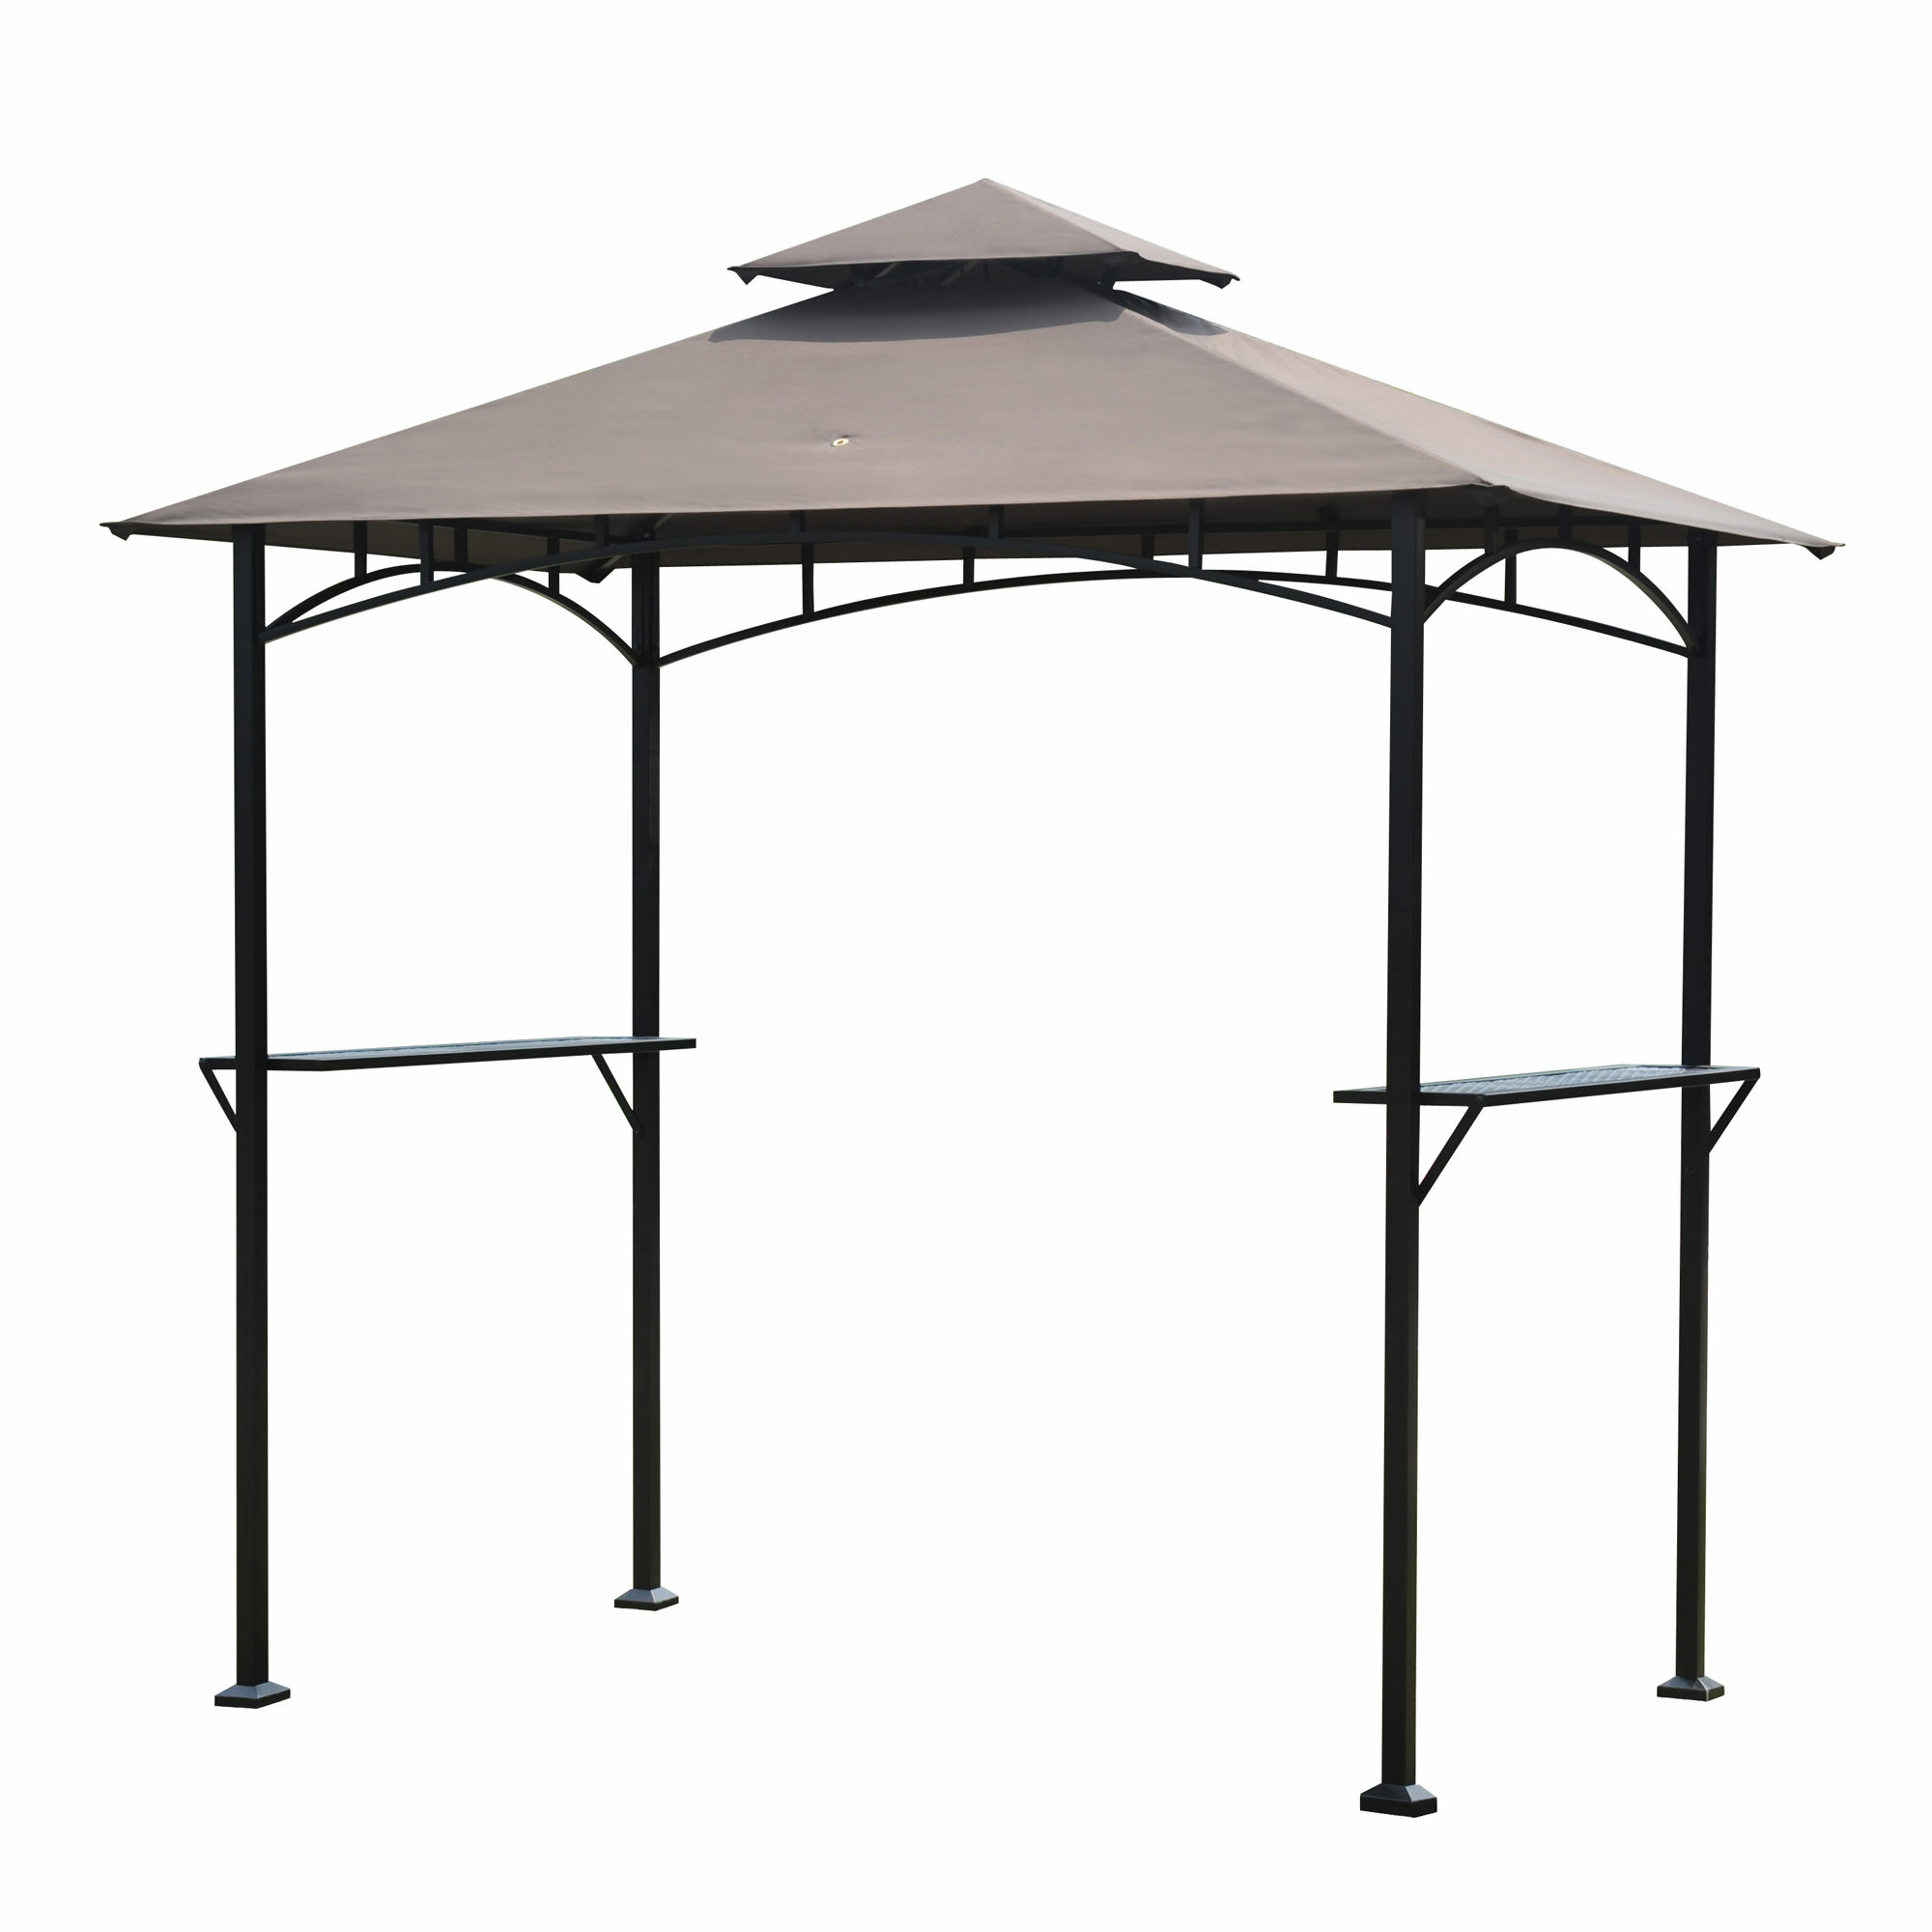 Excellent sunjoy gazebo for garden ideas with sunjoy hardtop gazebo and sunjoy grill gazebo